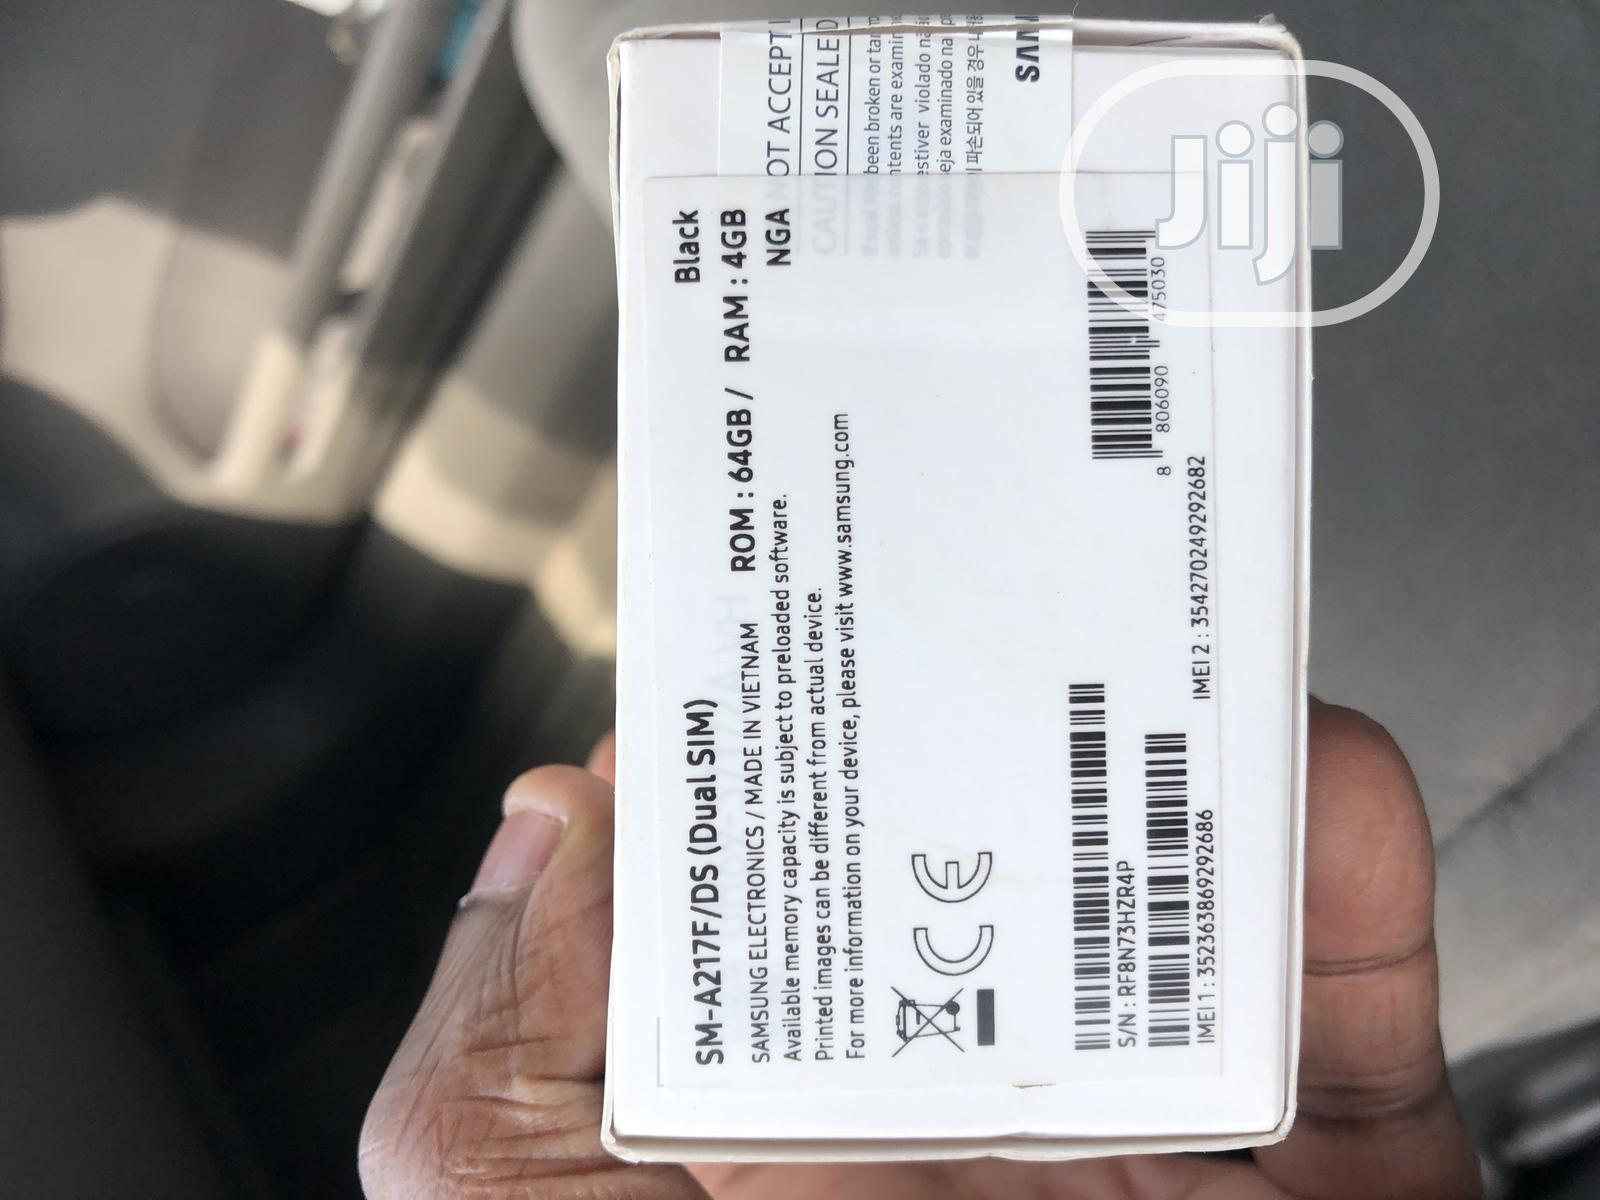 New Samsung Galaxy A21s 64 GB Black | Mobile Phones for sale in Ajah, Lagos State, Nigeria